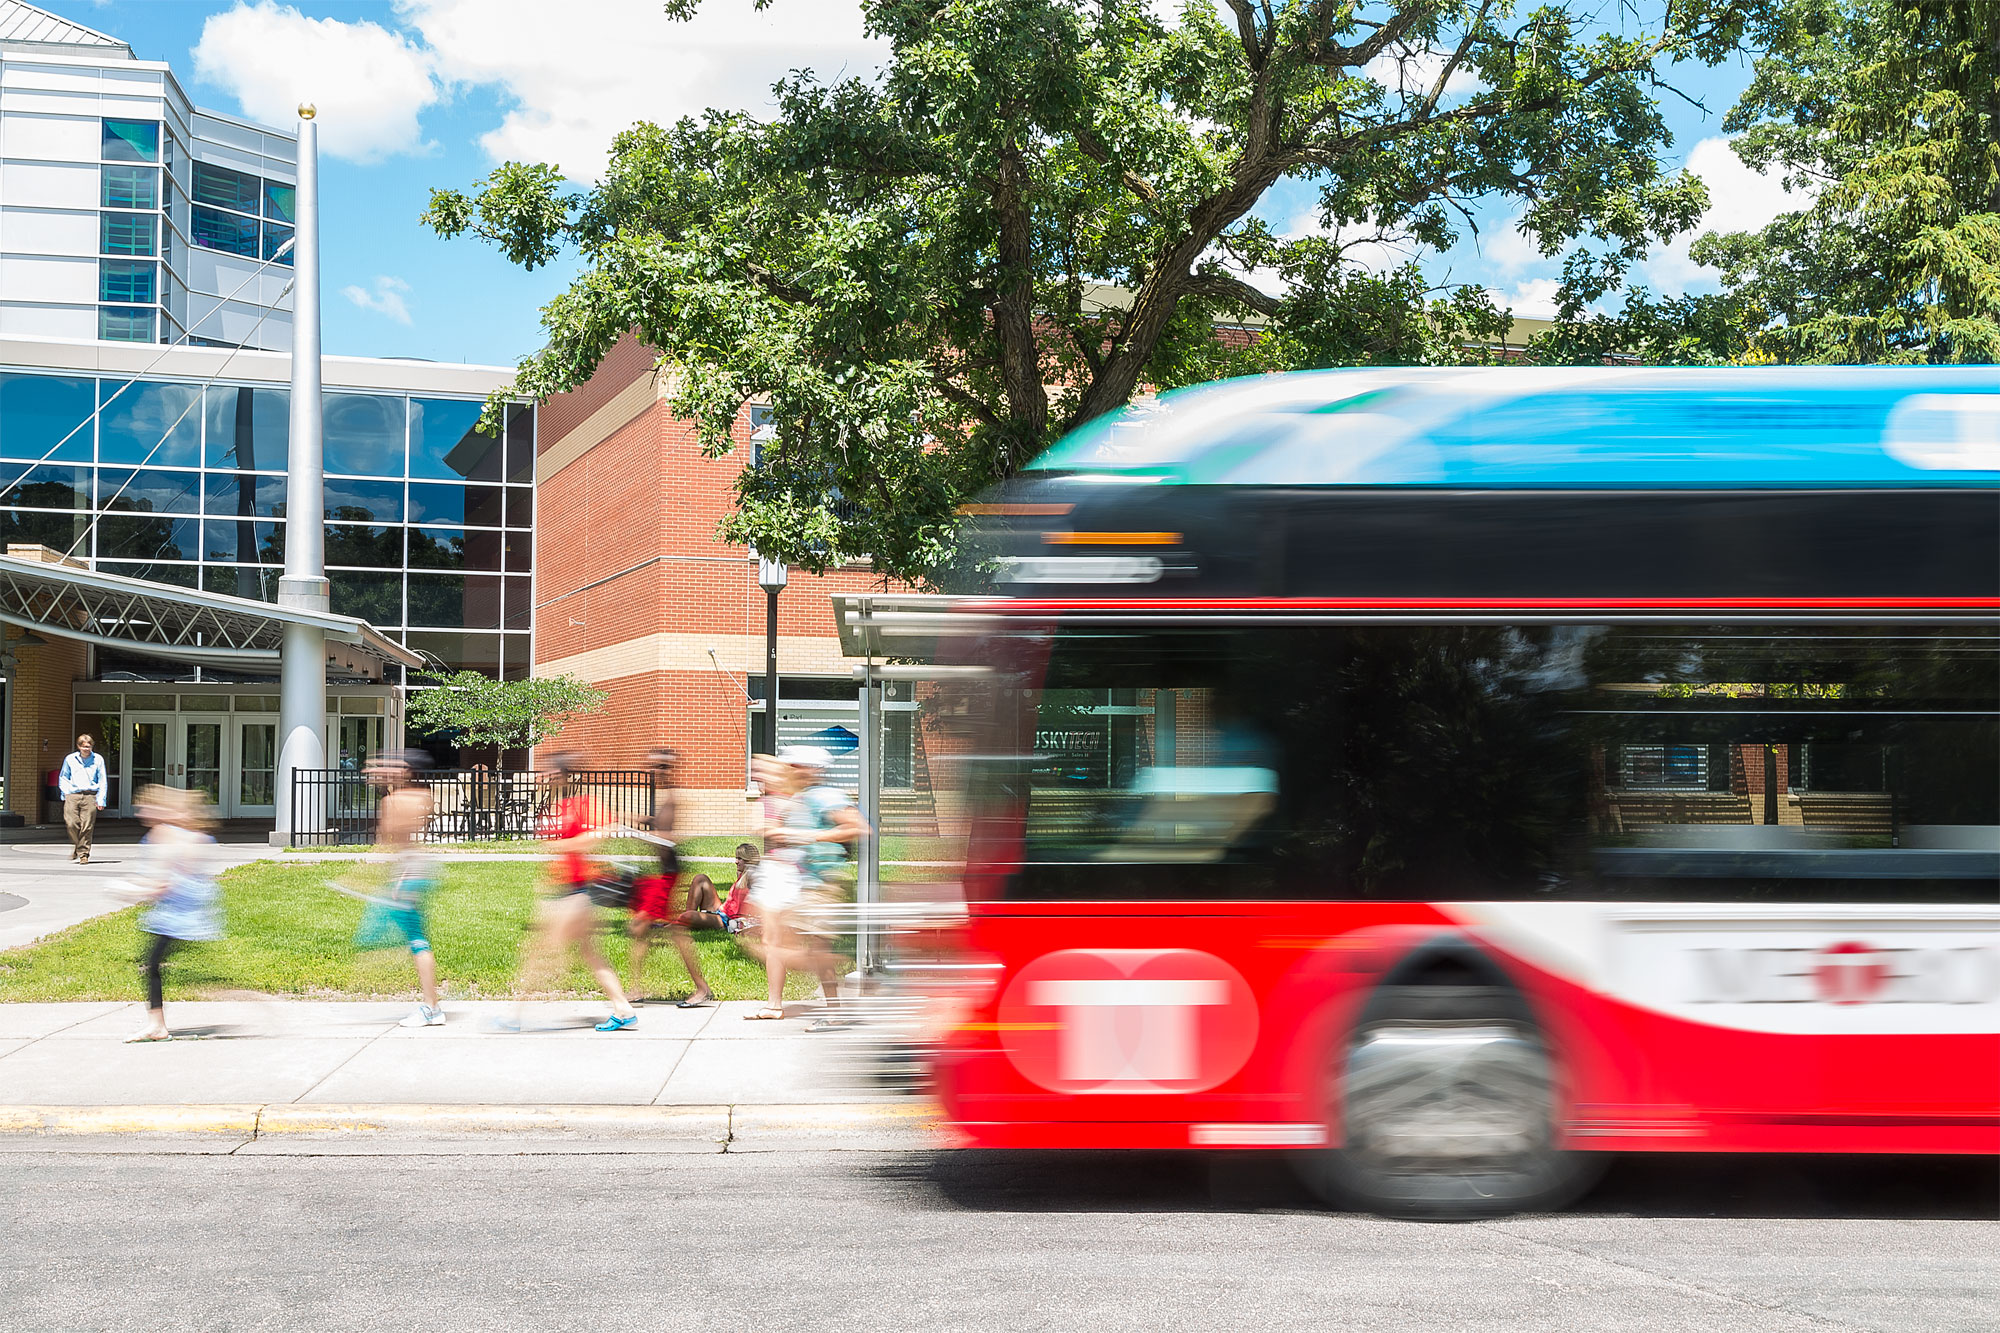 Bus Arriving to St. Cloud State University (SCSU)